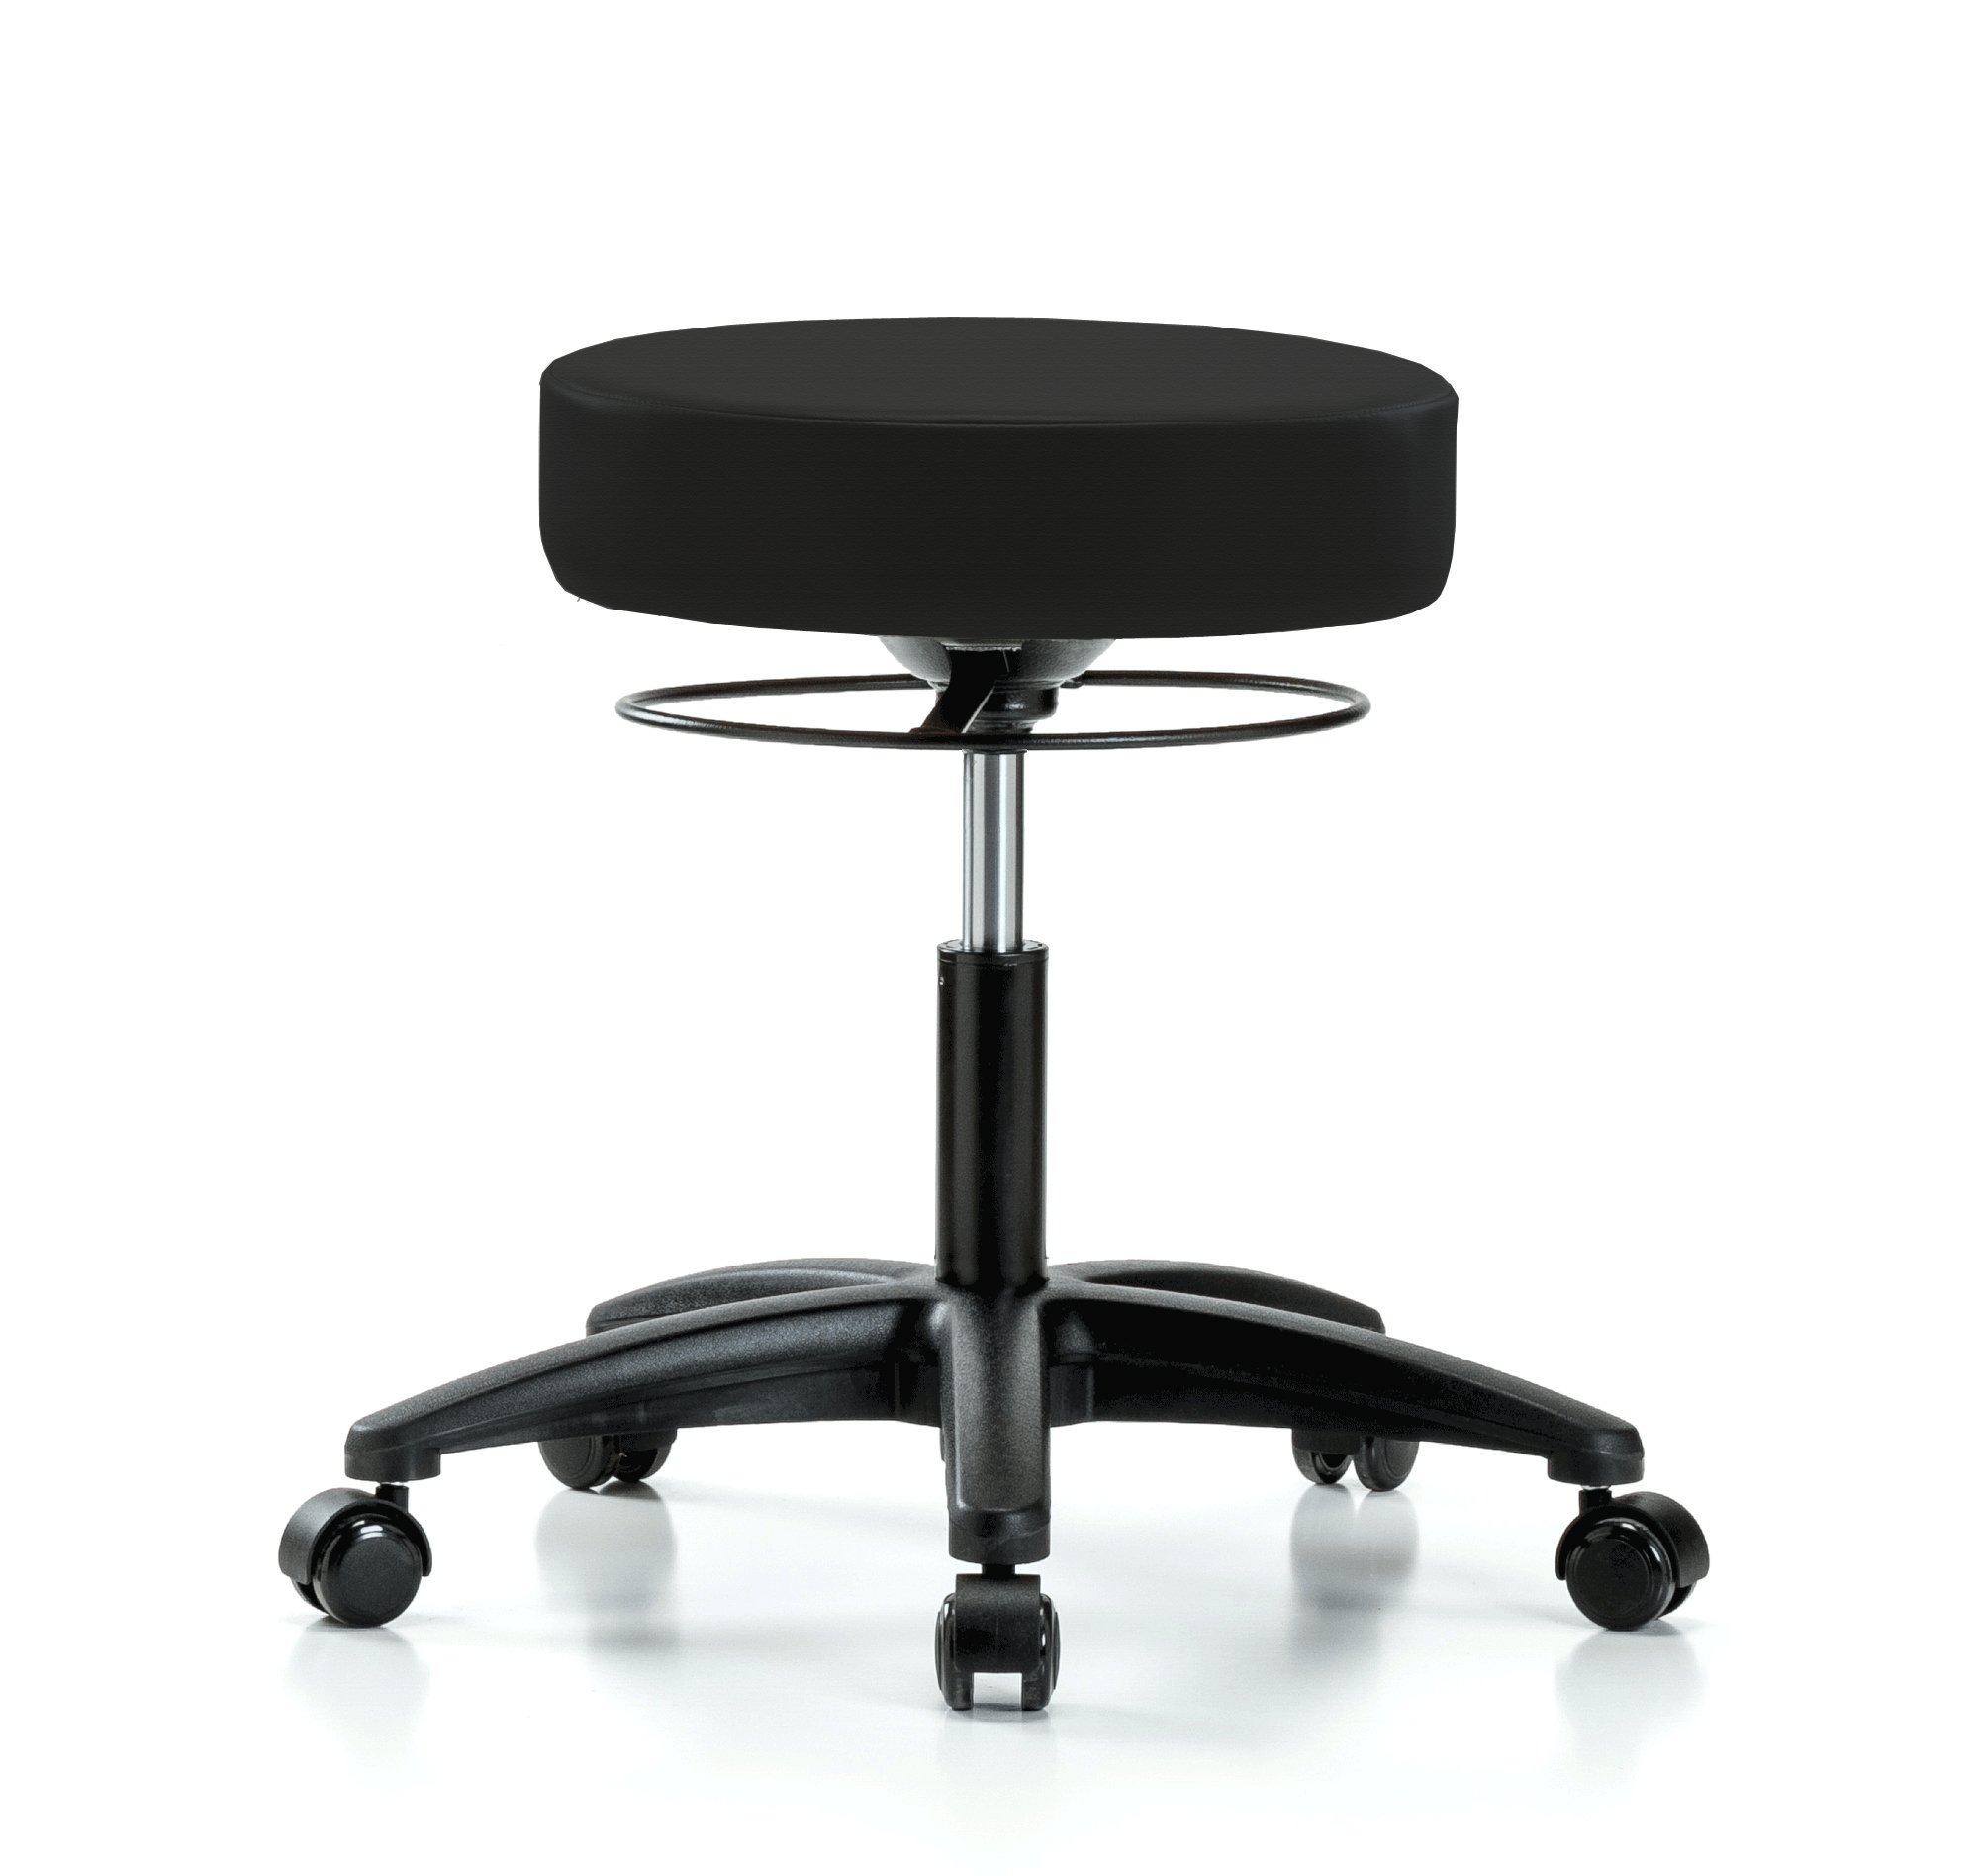 Perch Stella Rolling Adjustable Stool Medical Salon Spa Massage Tattoo Office 18.5'' - 24'' (Soft Floor Casters/Black Fabric)